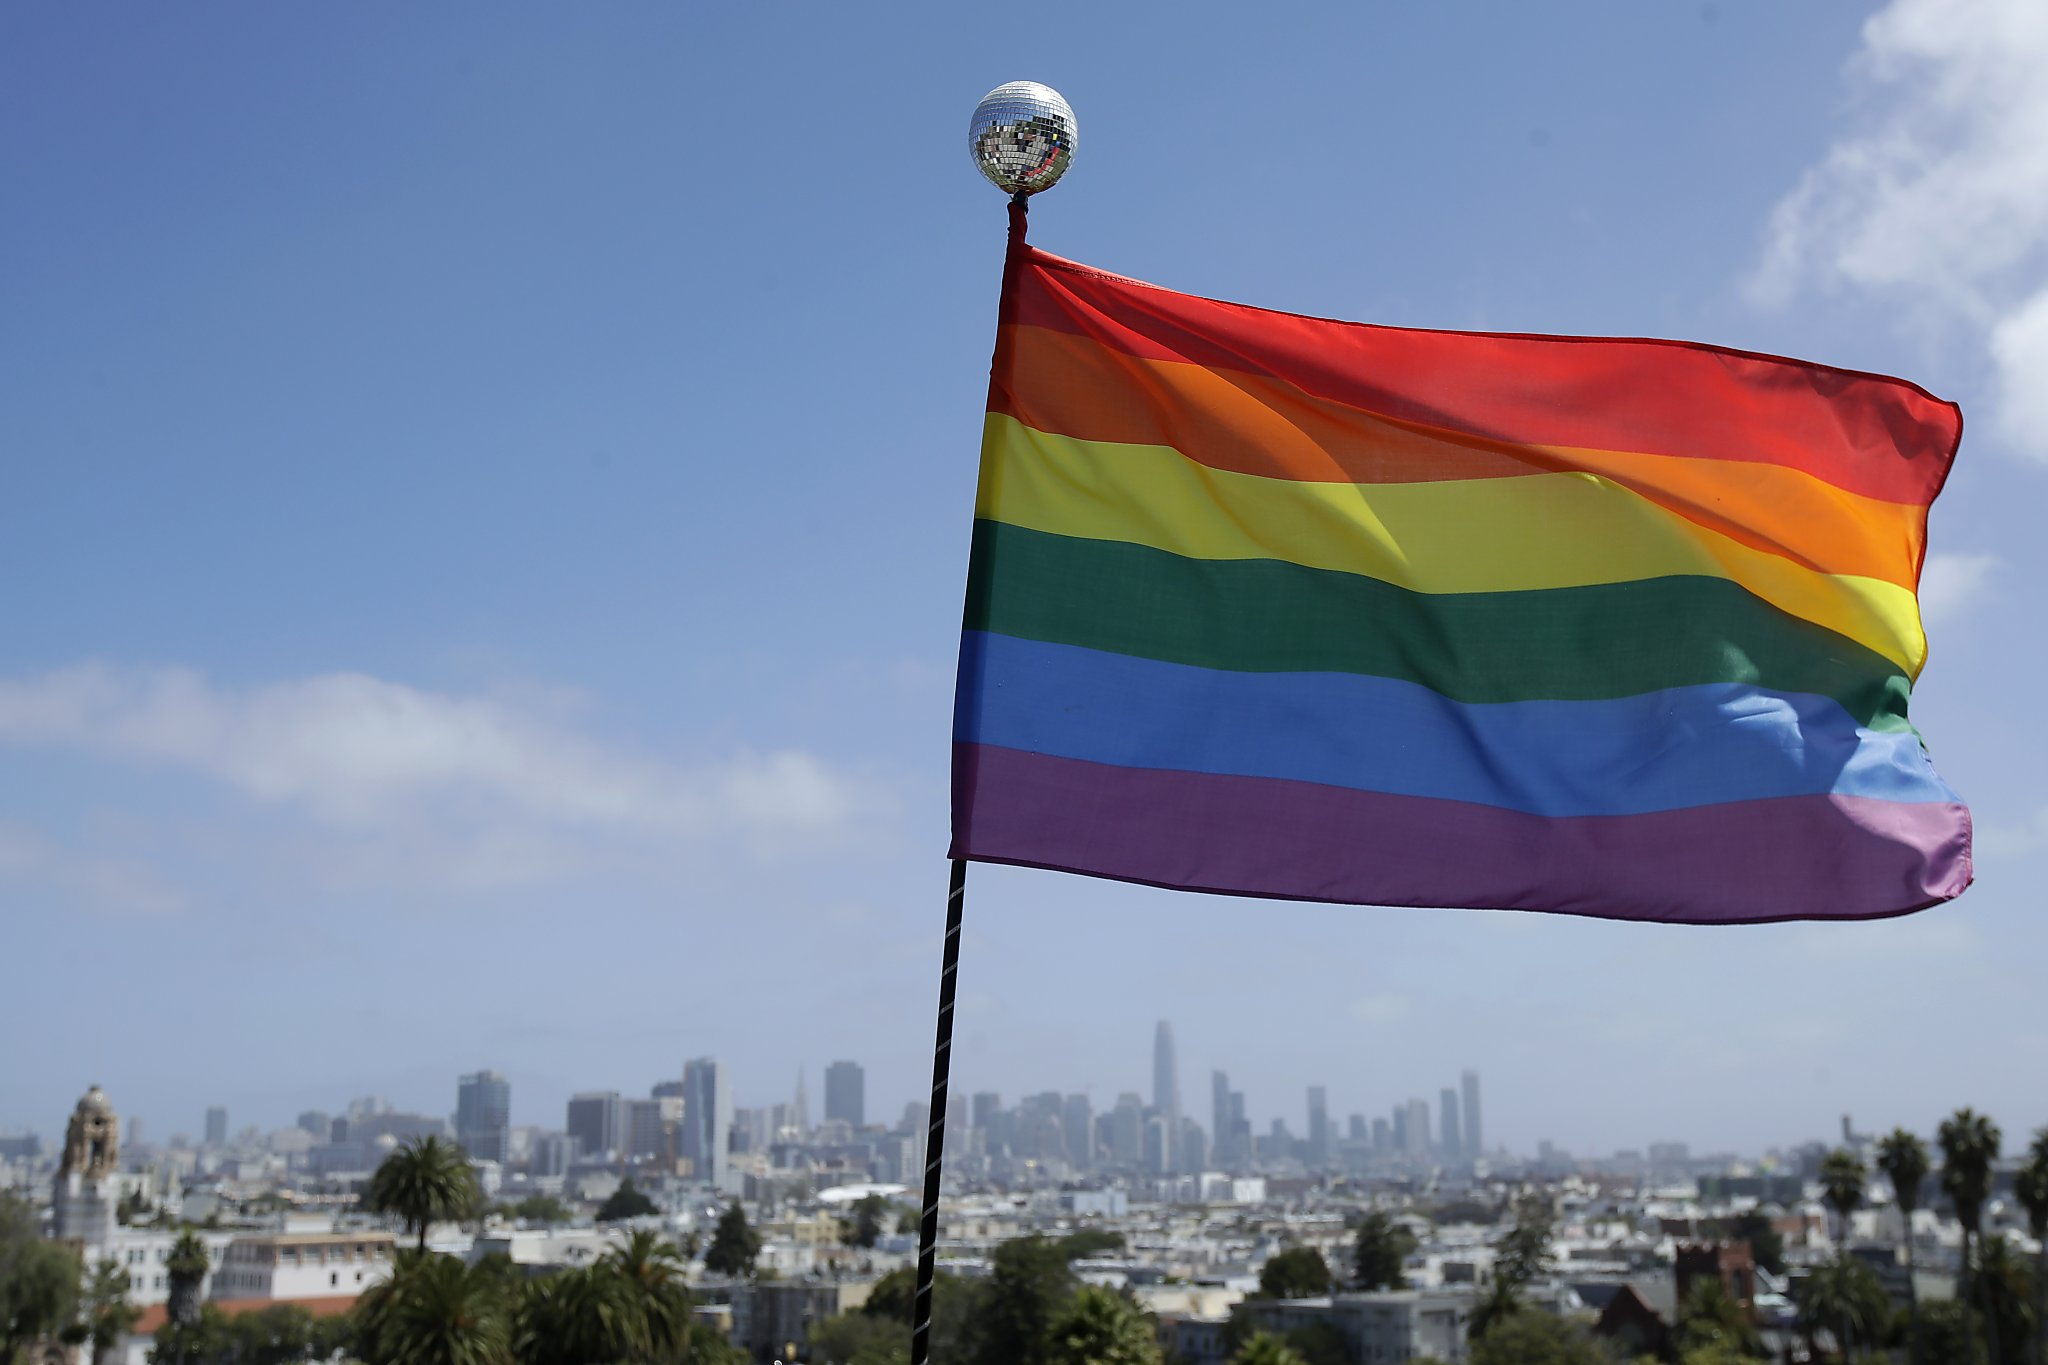 www.sfchronicle.com: California will track coronavirus' toll on LGBTQ community, after months of delay